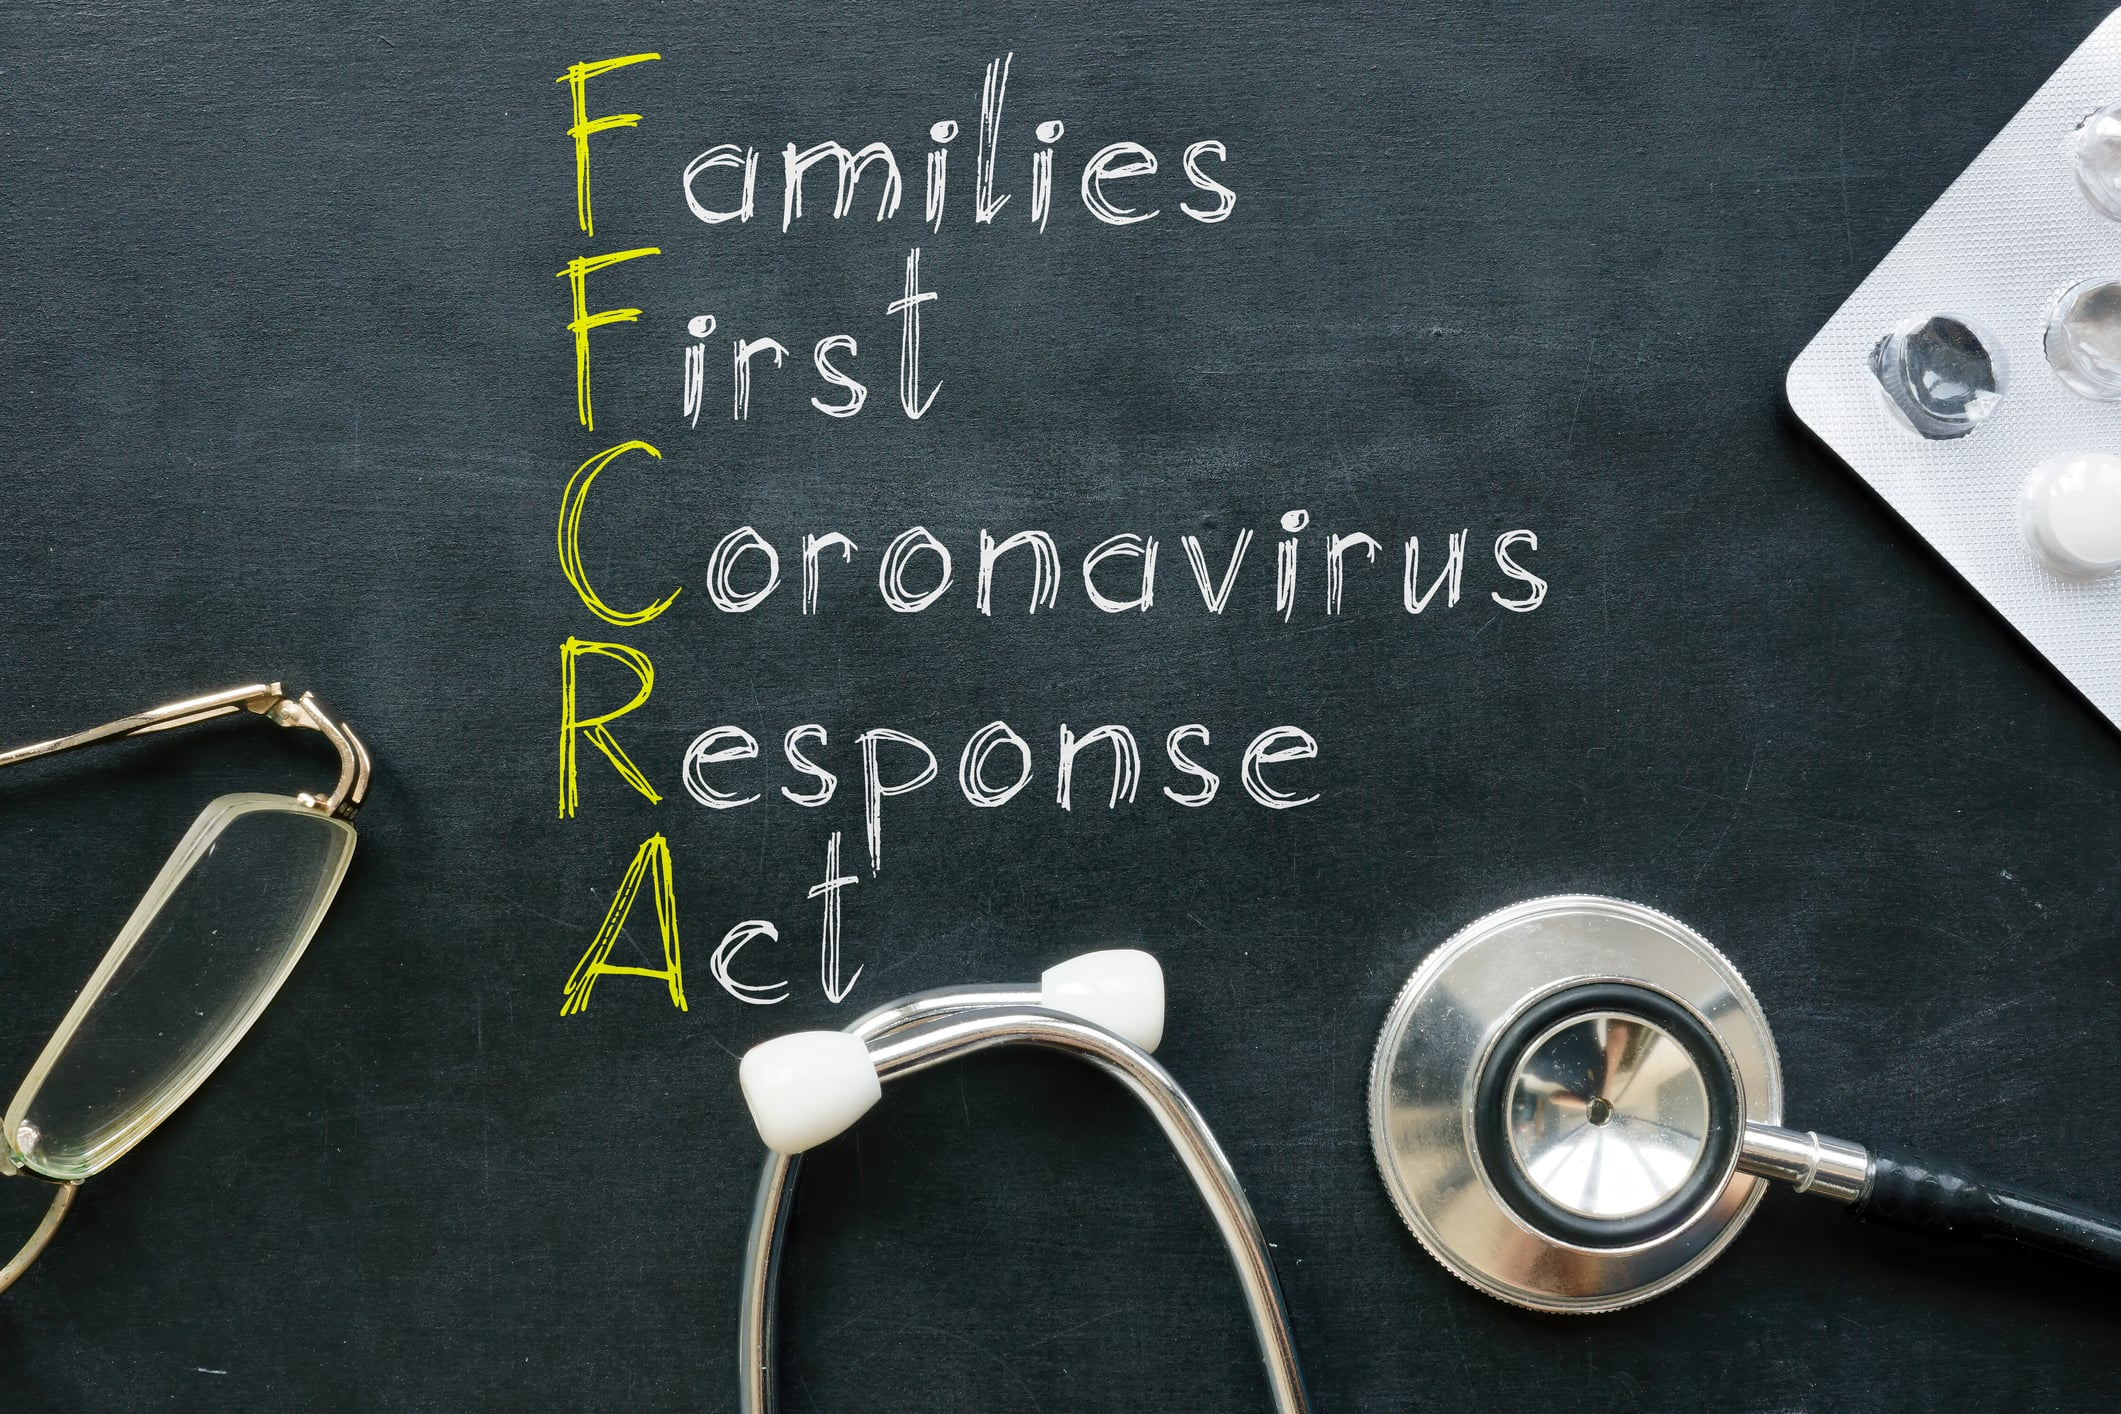 Families First Coronavirus Response Act FFCRA is shown on a photo